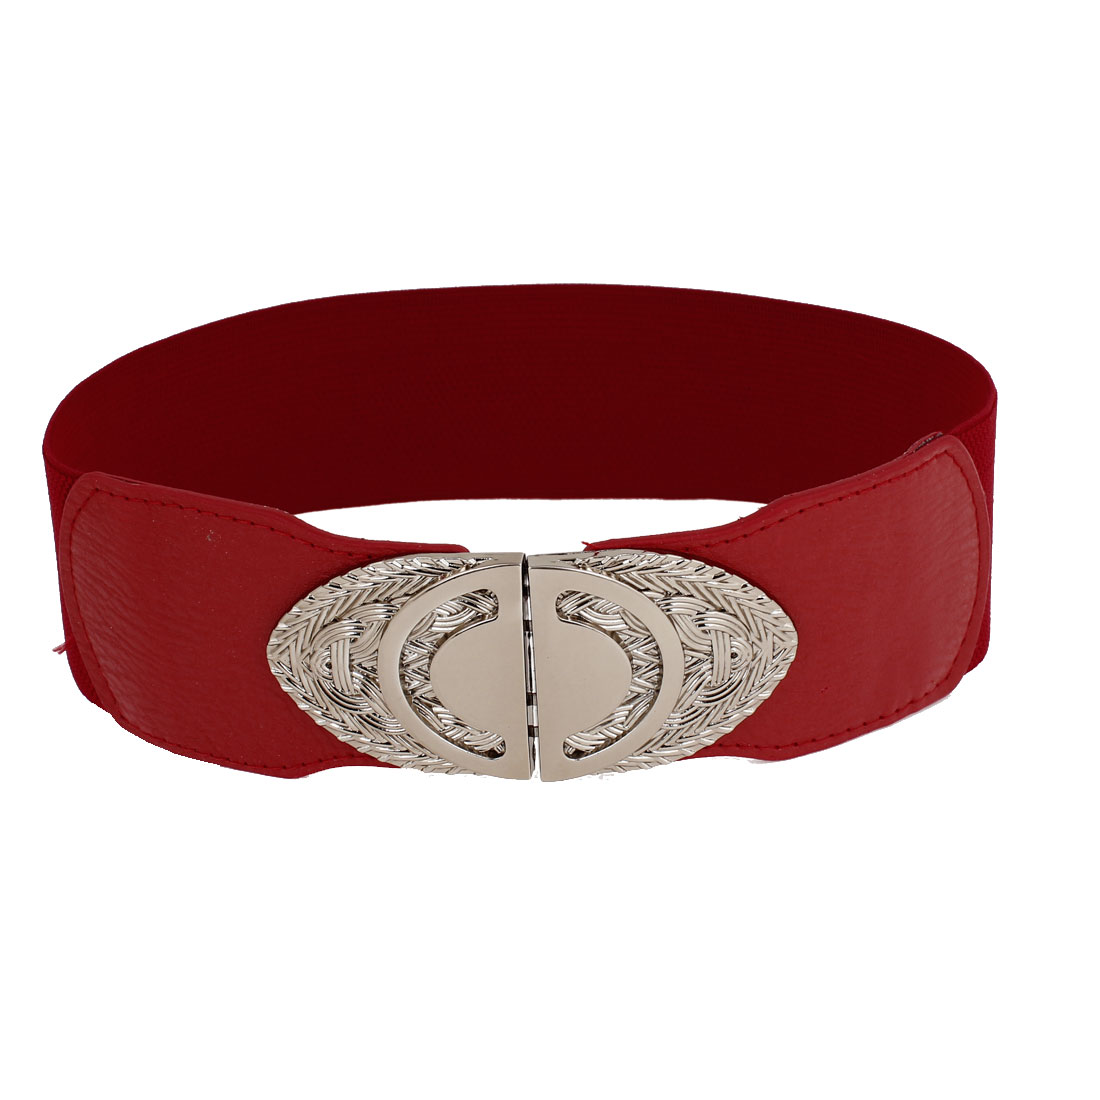 Woman Lady Oval Interlock Buckle Red Faux Leather Coated Stretch Cinch Belt